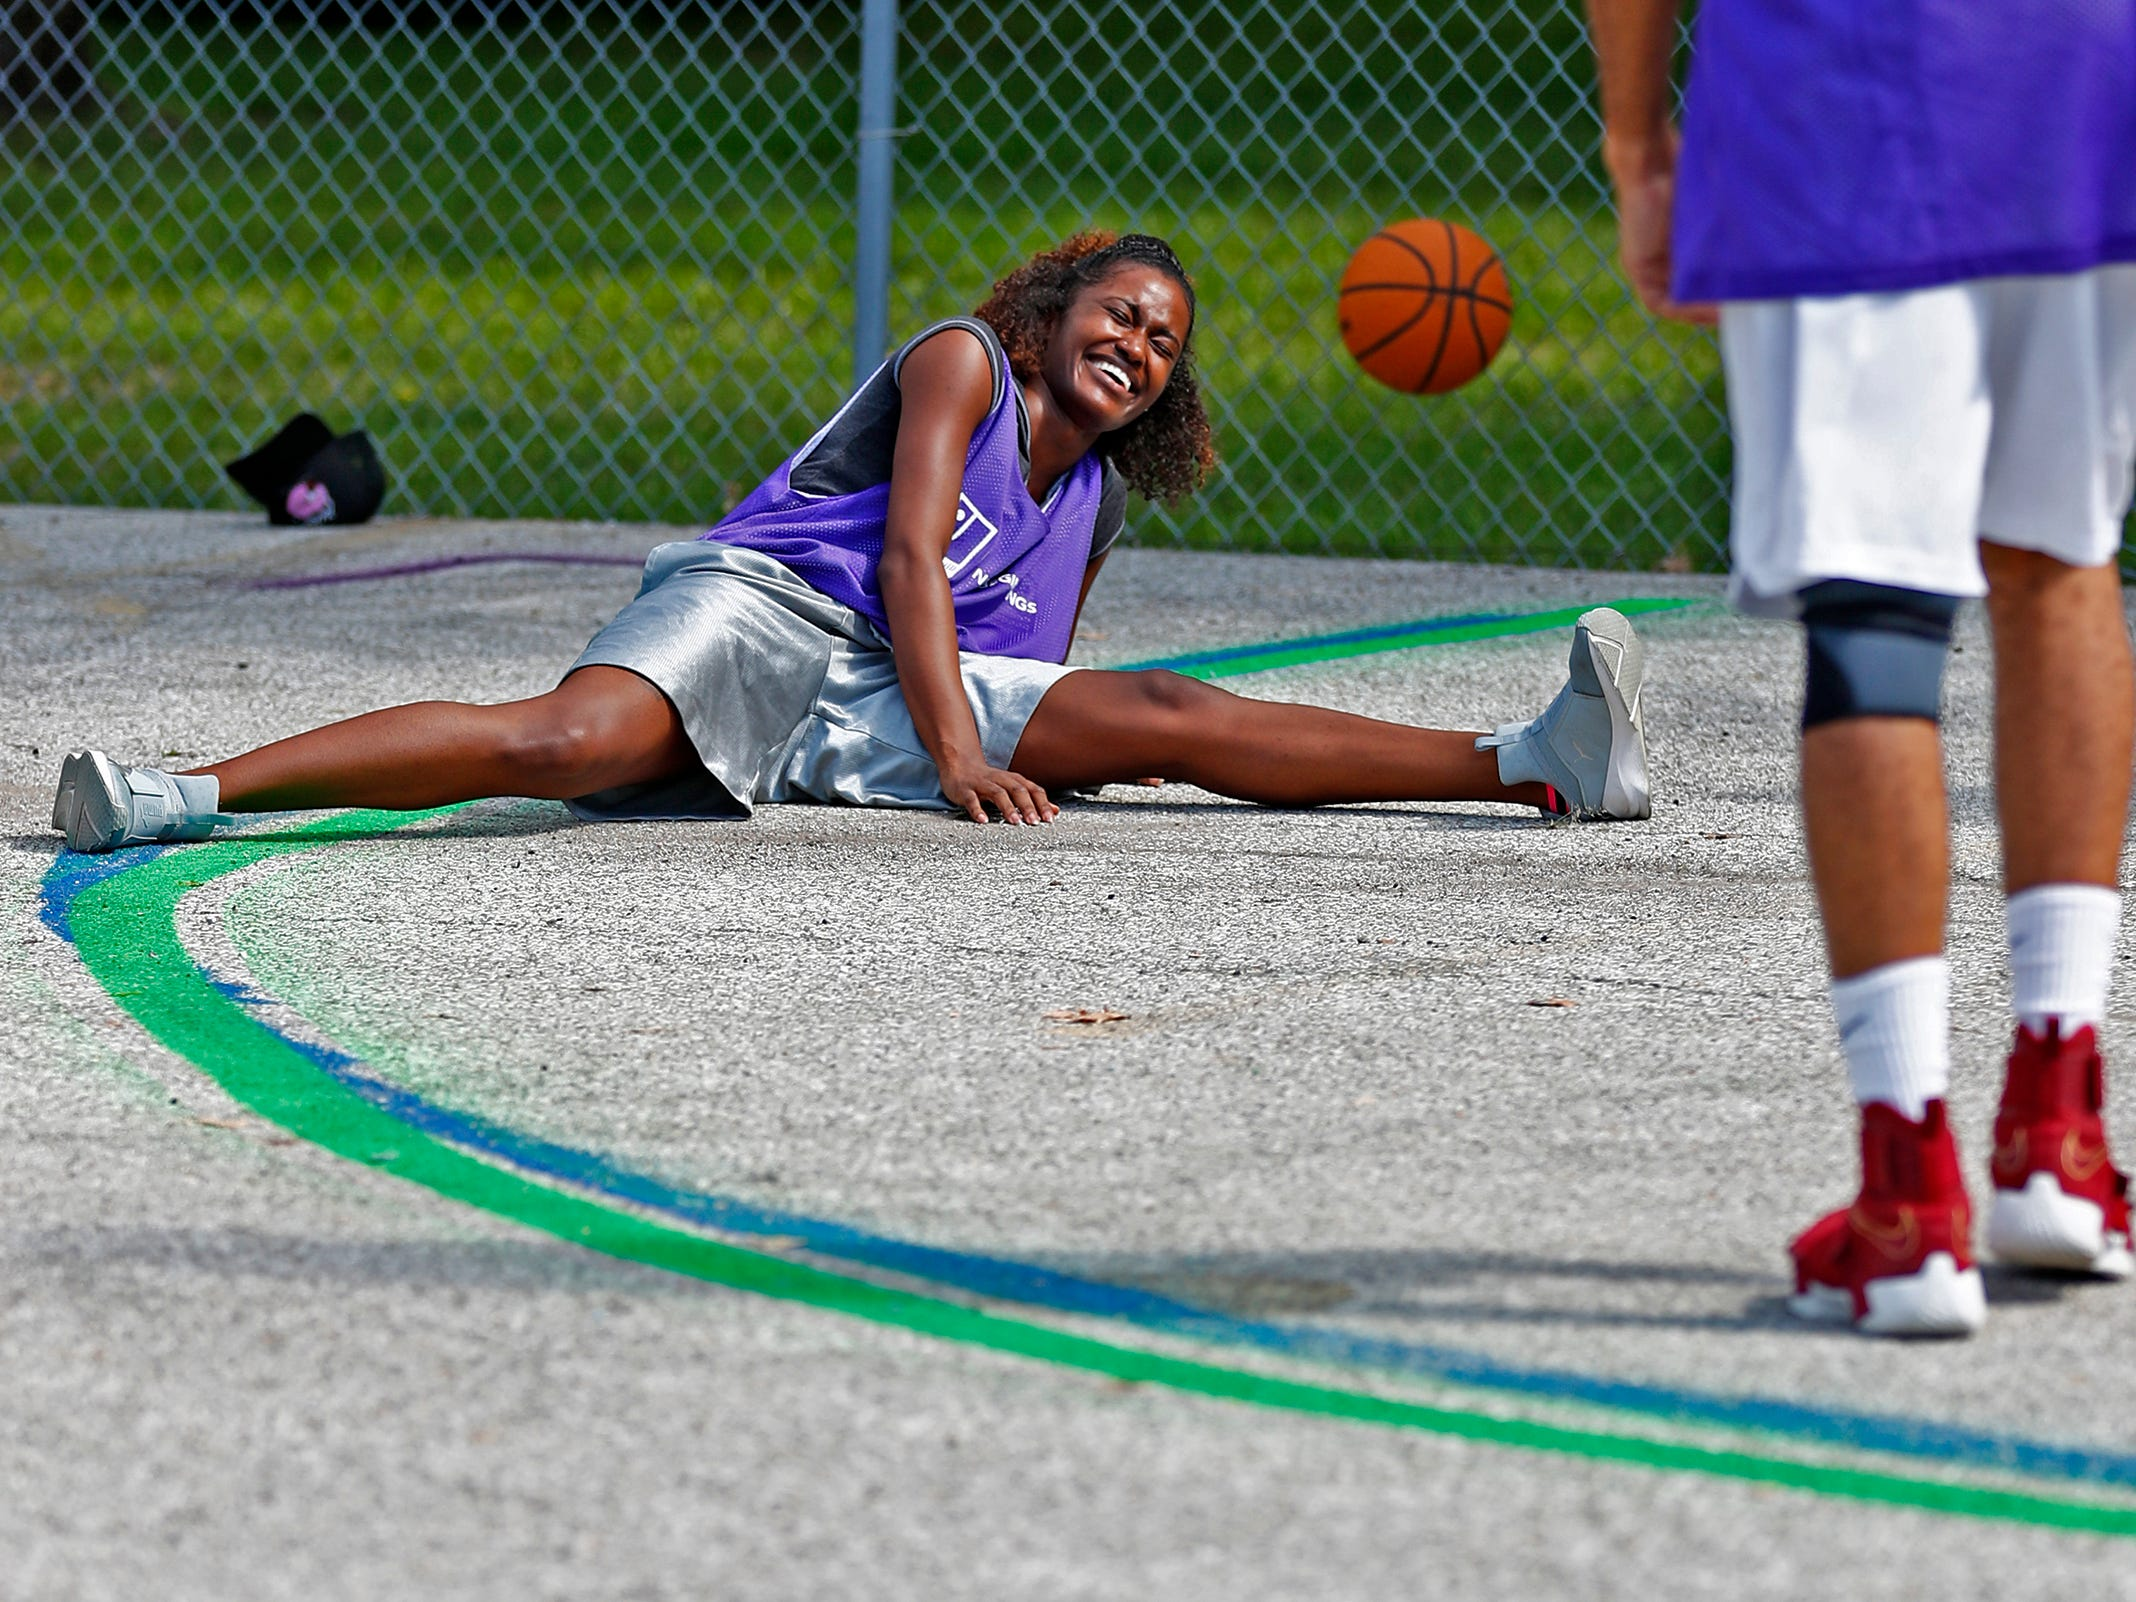 Alexaundria Monroe, with Marion County Probations, laughs as she fell into a spilt, during a basketball game at Goodwill Commercial Services, Wednesday, Sept. 19, 2018.  Goodwill Industries of Central Indiana's New Beginnings hosted the 3-on-3 basketball tournament bringing together participants in New Beginnings, a six-month re-entry program for ex-offenders that works on job and life skills, with representatives from Goodwill, IMPD, the Mayor's office, Marion County Probation department and other services.  The goal is to celebrate the New Beginnings program while breaking down re-entry barriers through basketball.